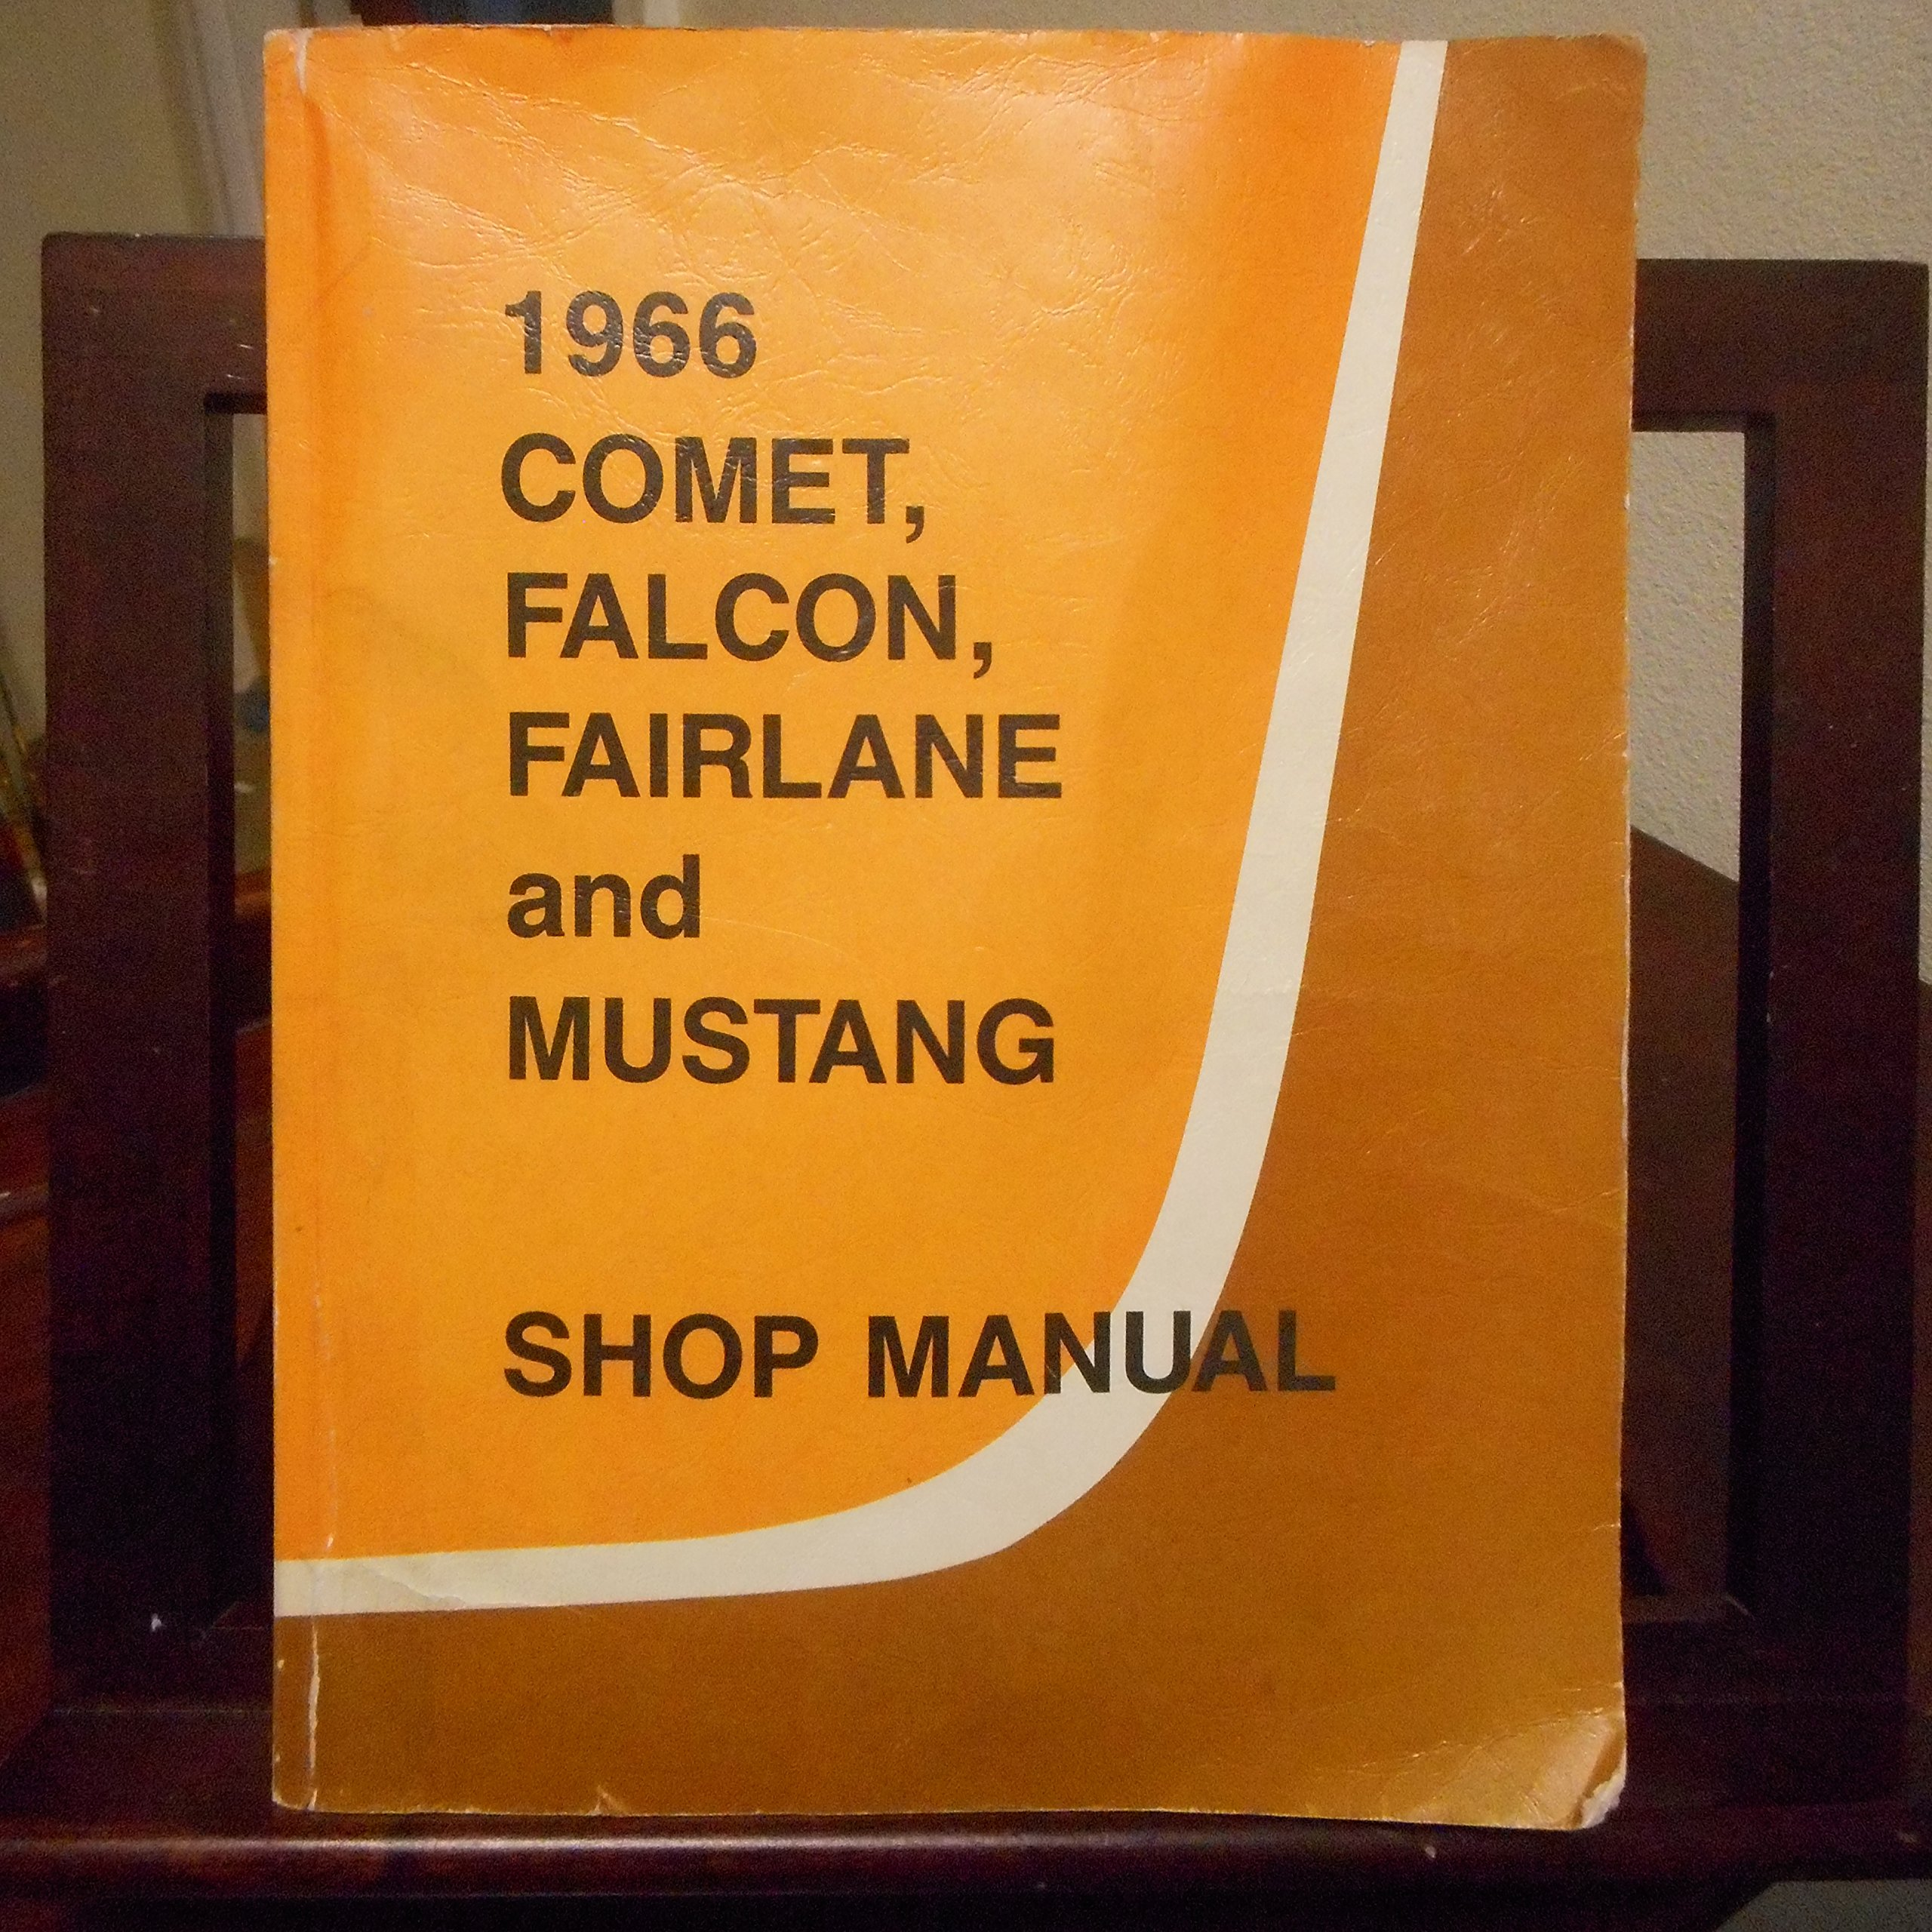 1966 Comet, Falcon, Fairlane and Mustang Shop Manual: Ford Motor Company:  Amazon.com: Books